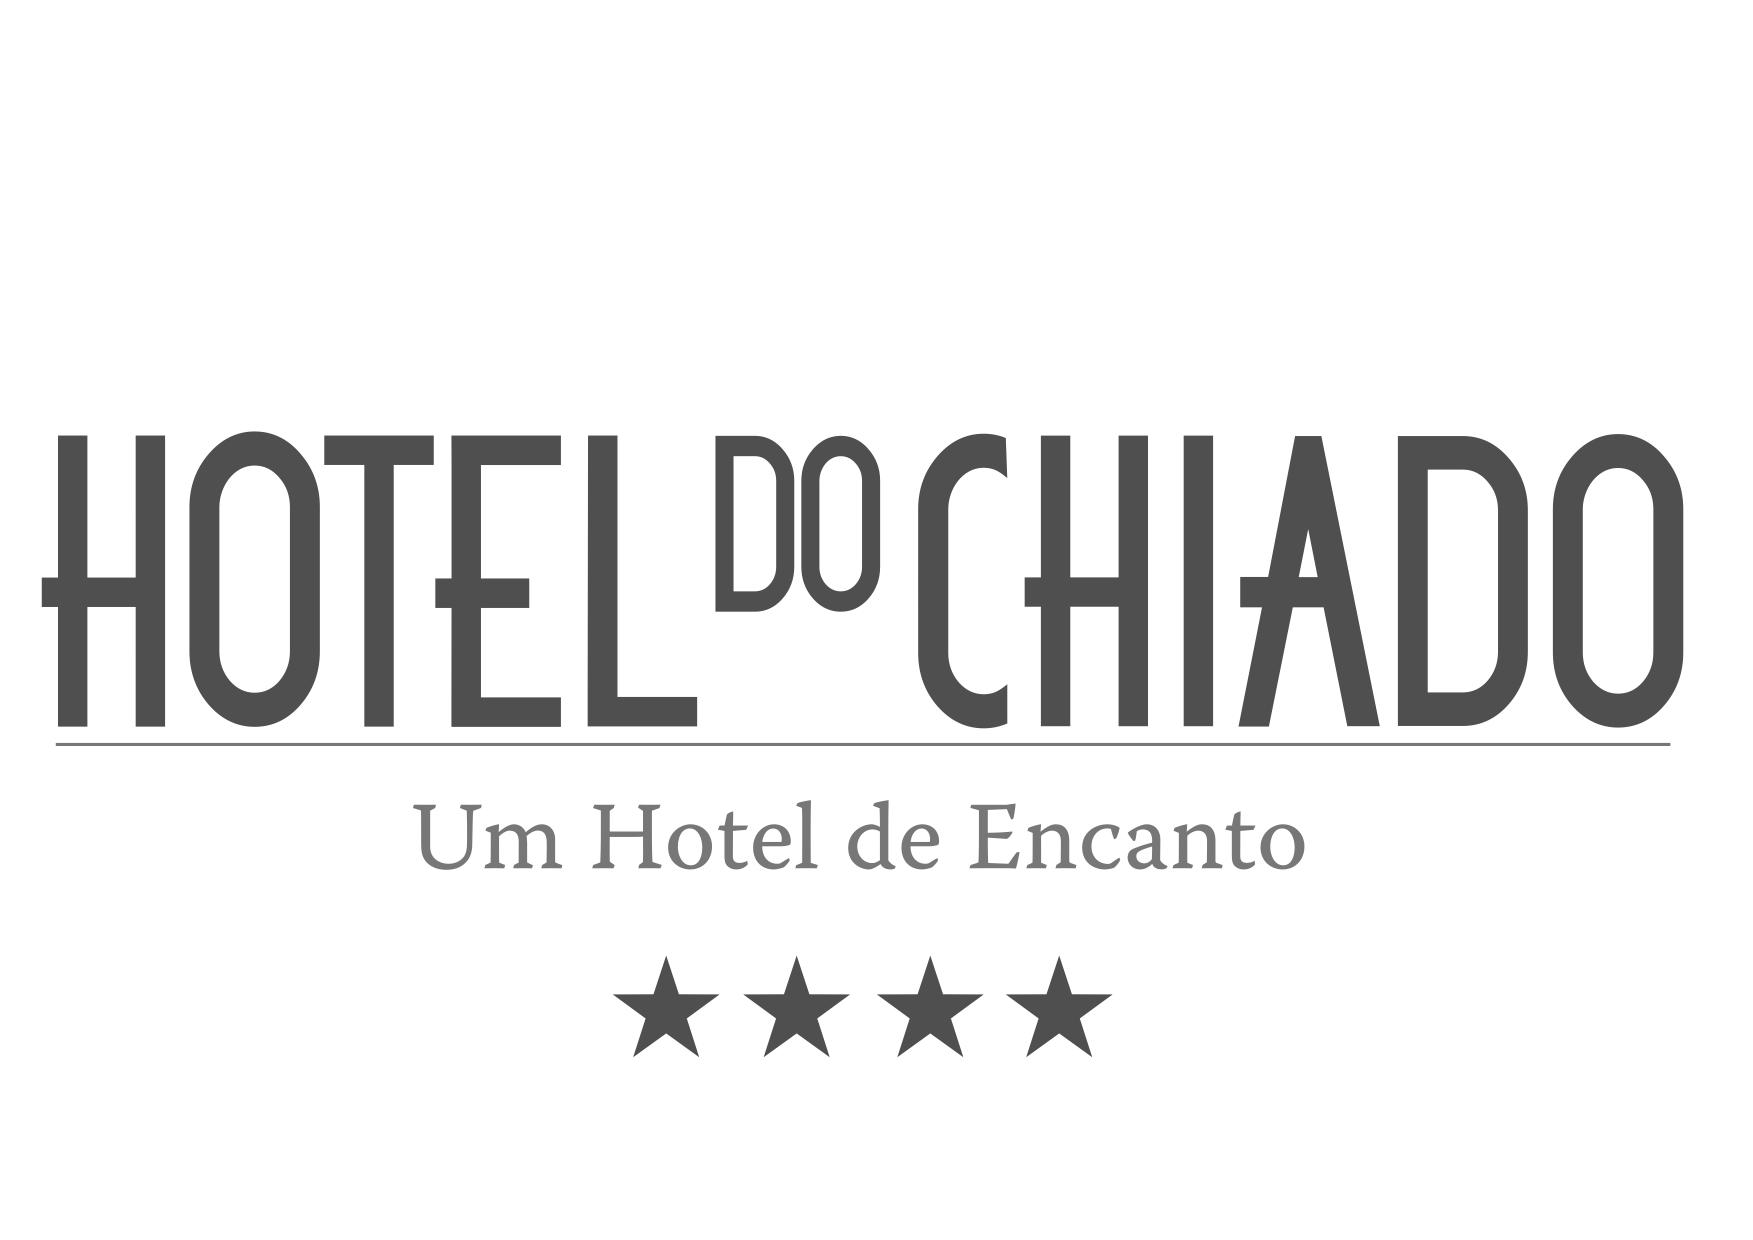 Hotel do Chiado - Armazéns do Chiado (Hotel